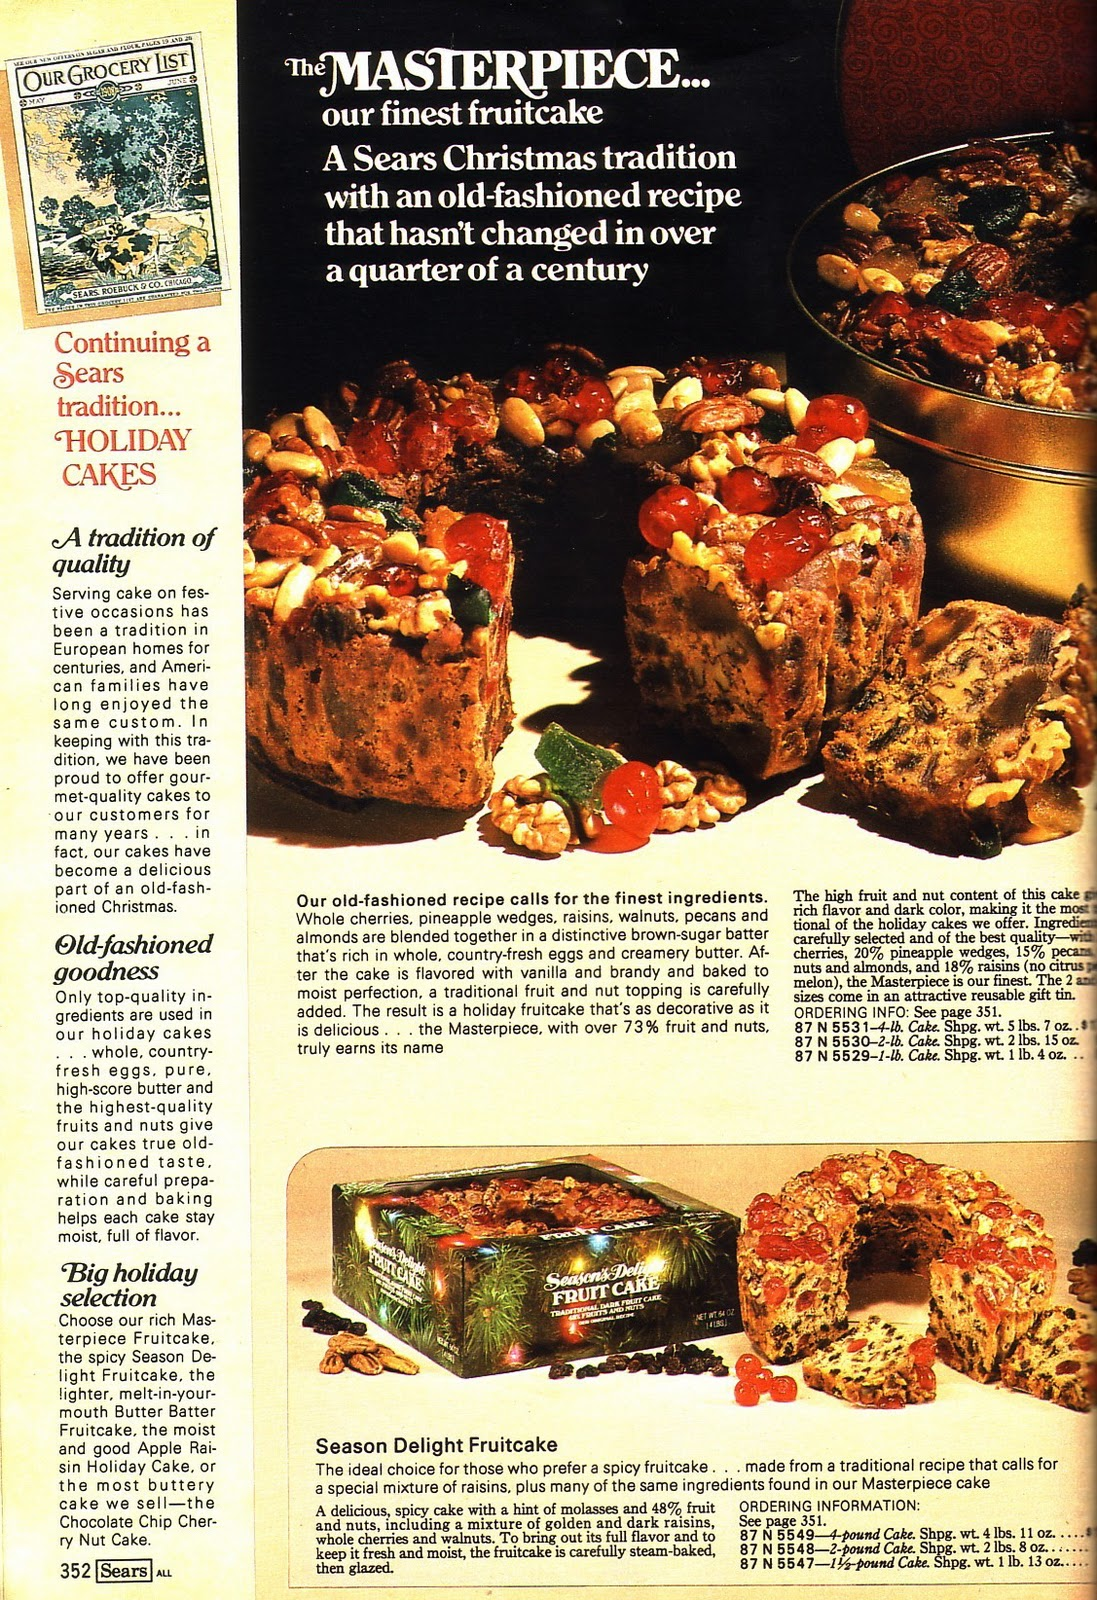 Taste Book Remember Monster Dad: Resurrecting The Past: 1980 Sears Holiday